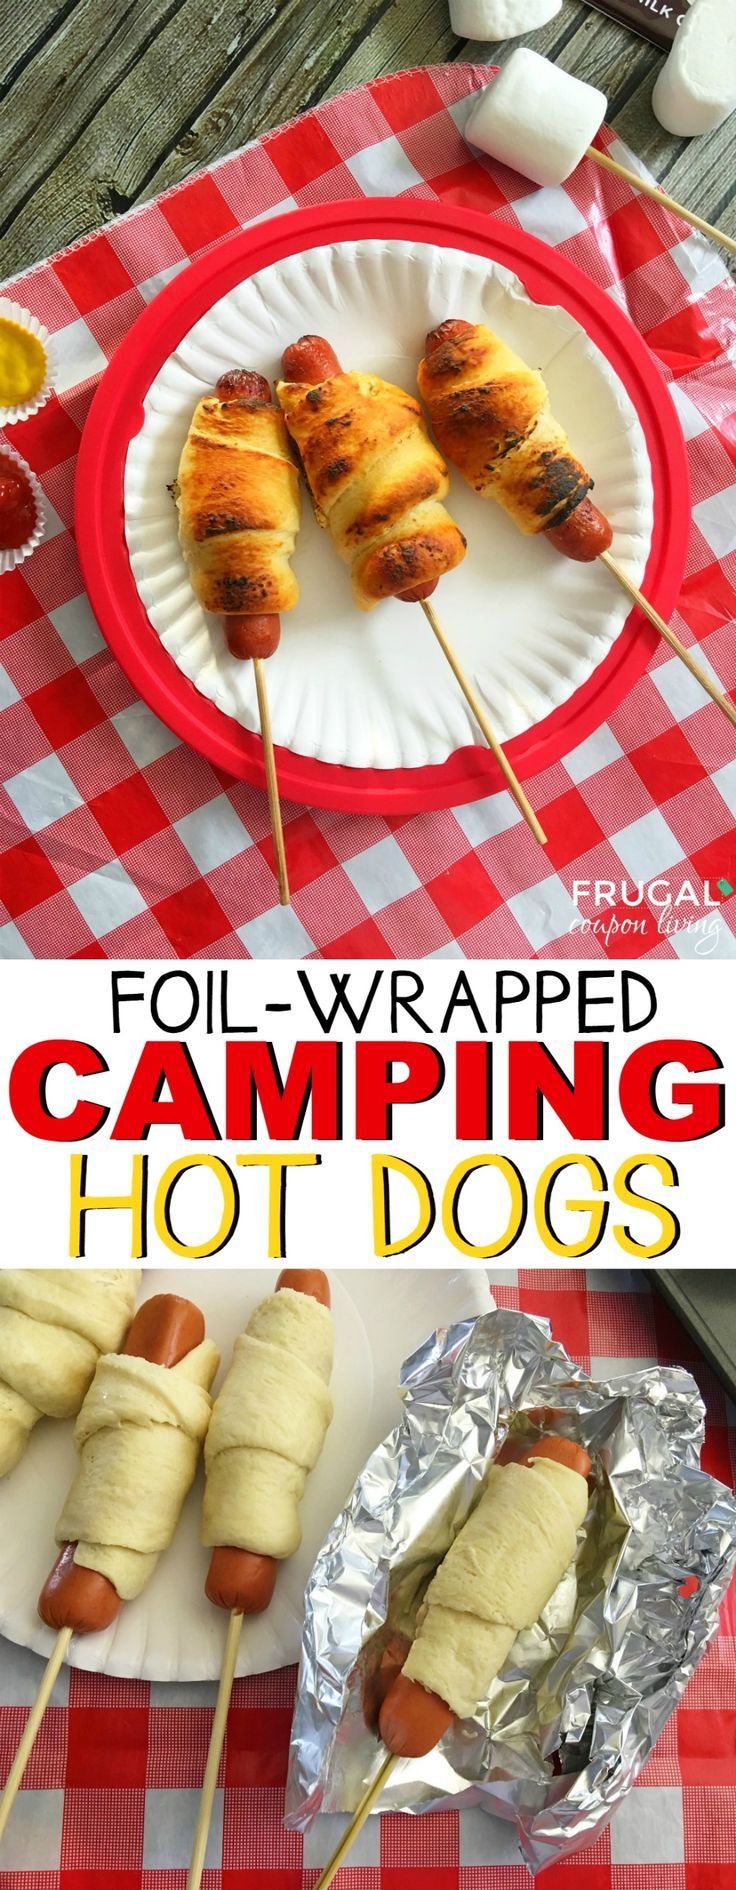 Camping Hot Dogs Recipe for the Campfire - Take these hot dogs to the backyard t...